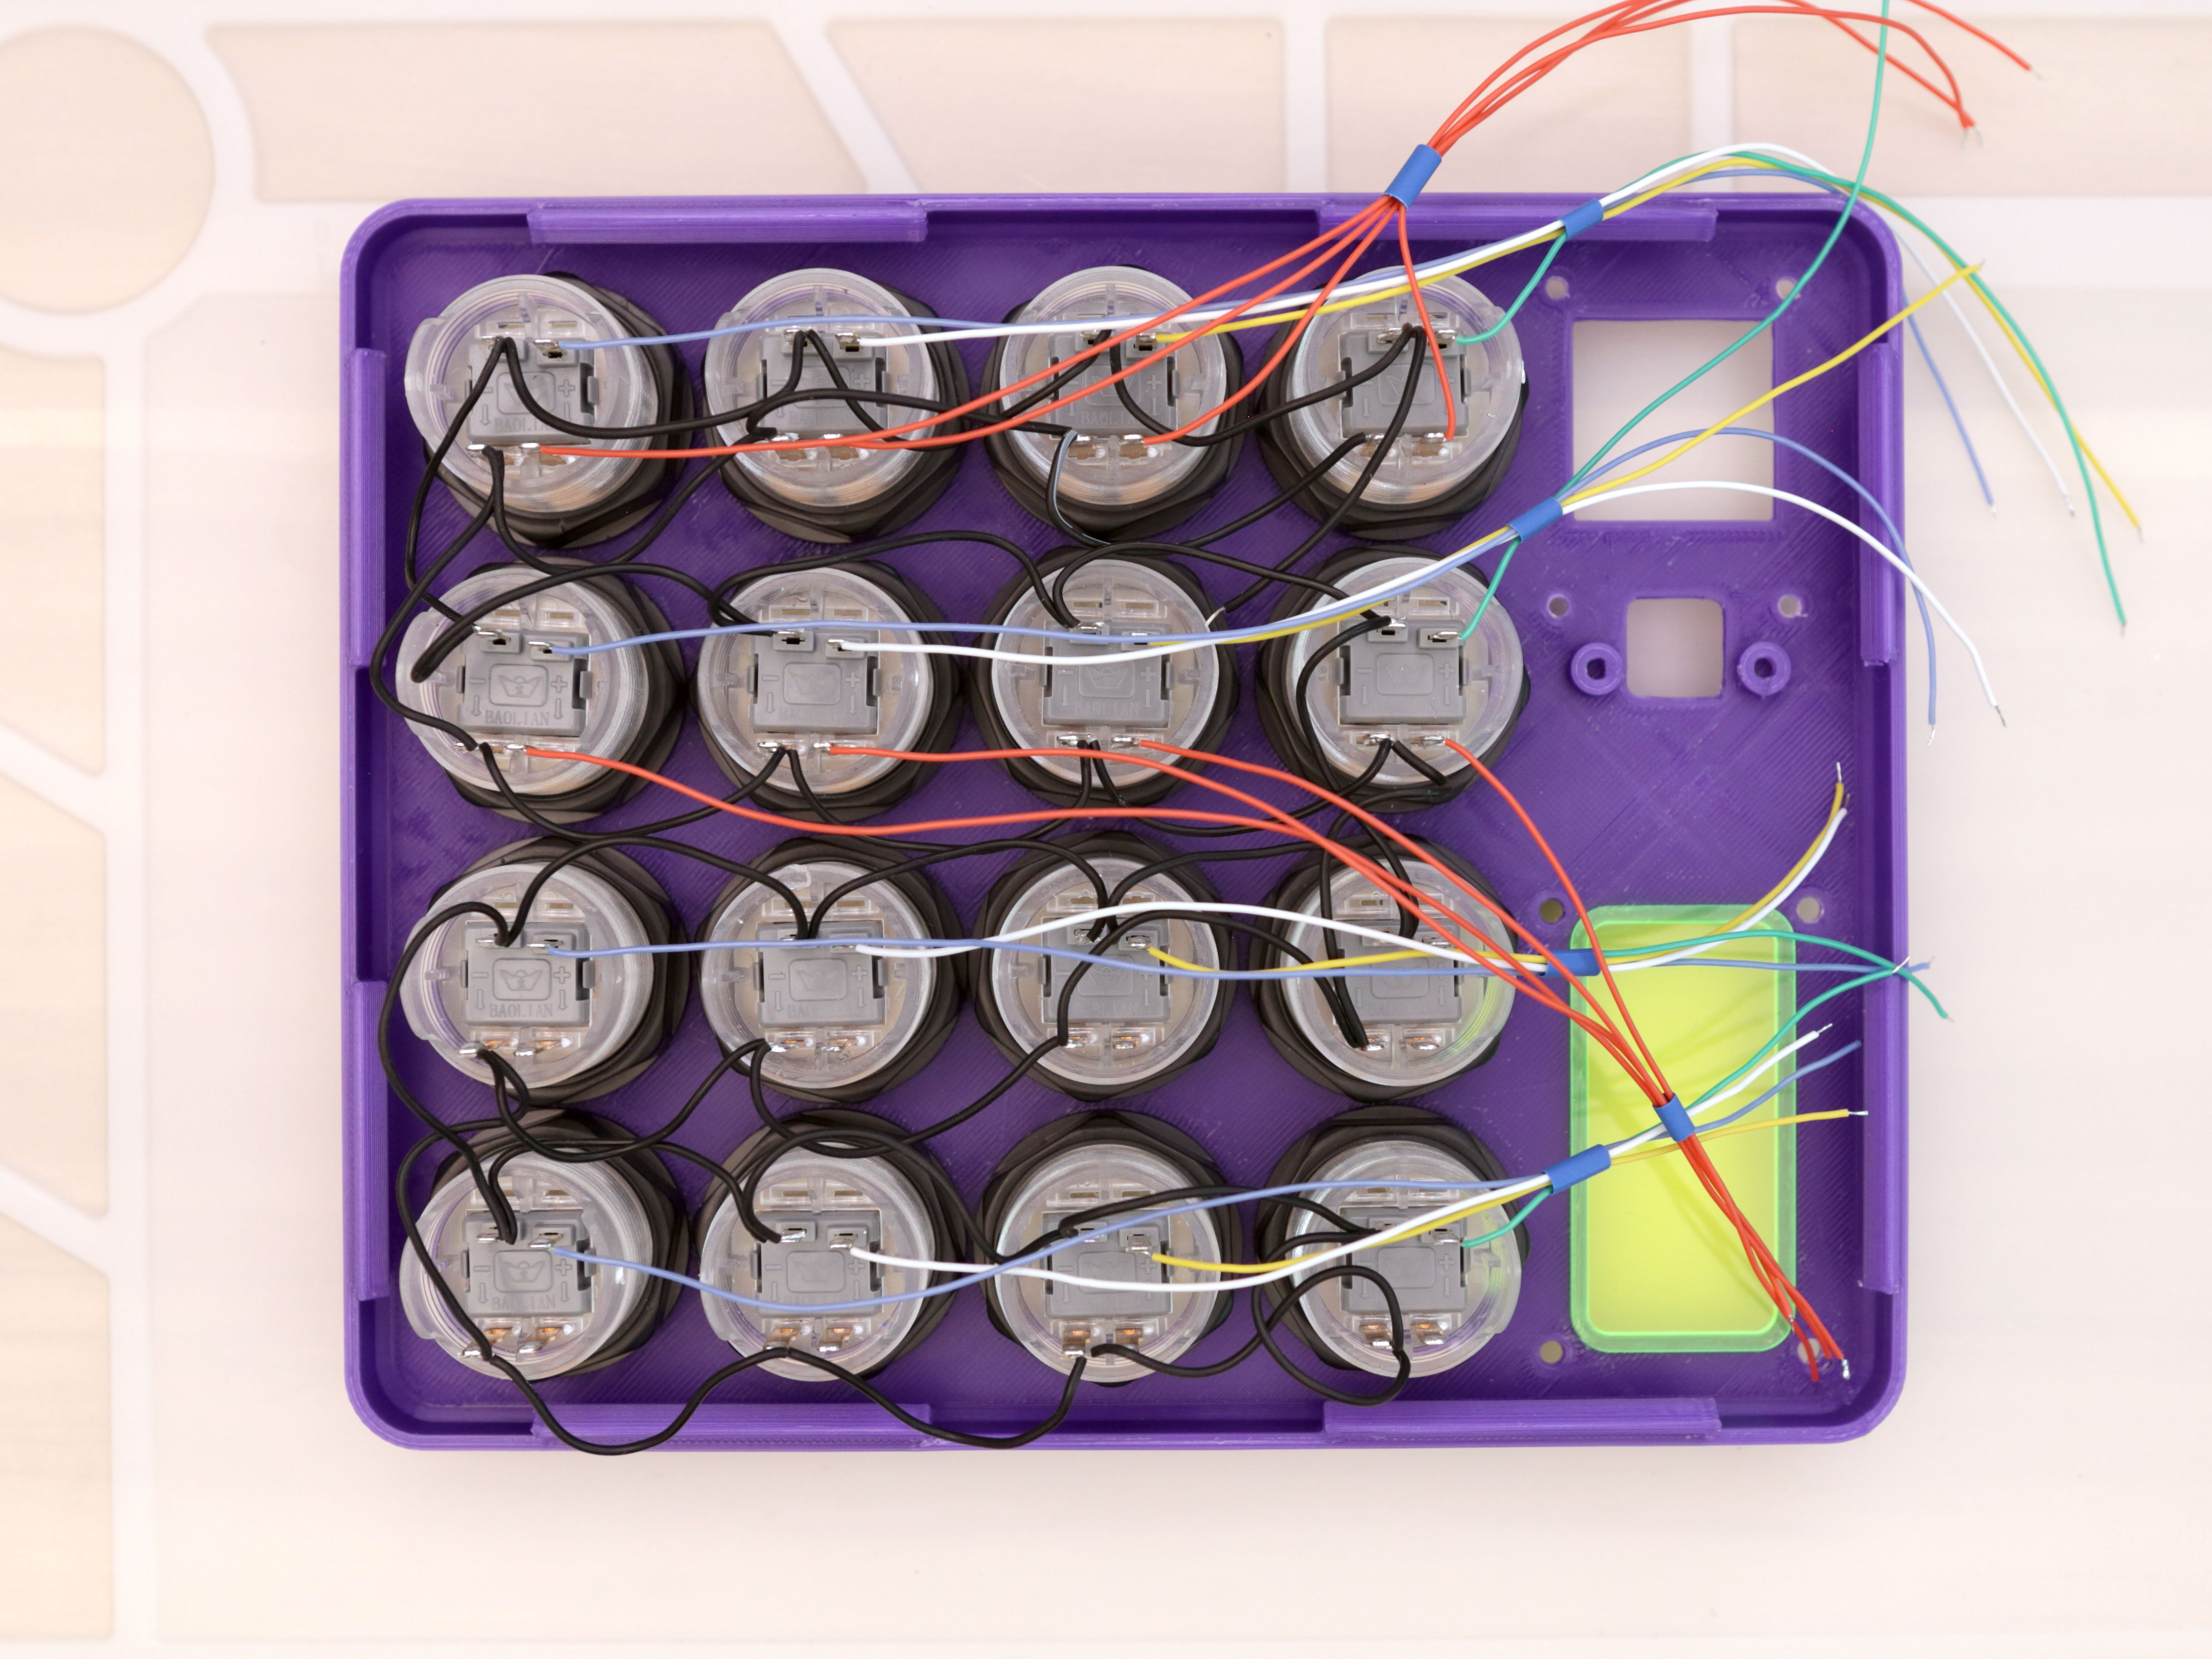 3d_printing_led-wired-5-8.jpg